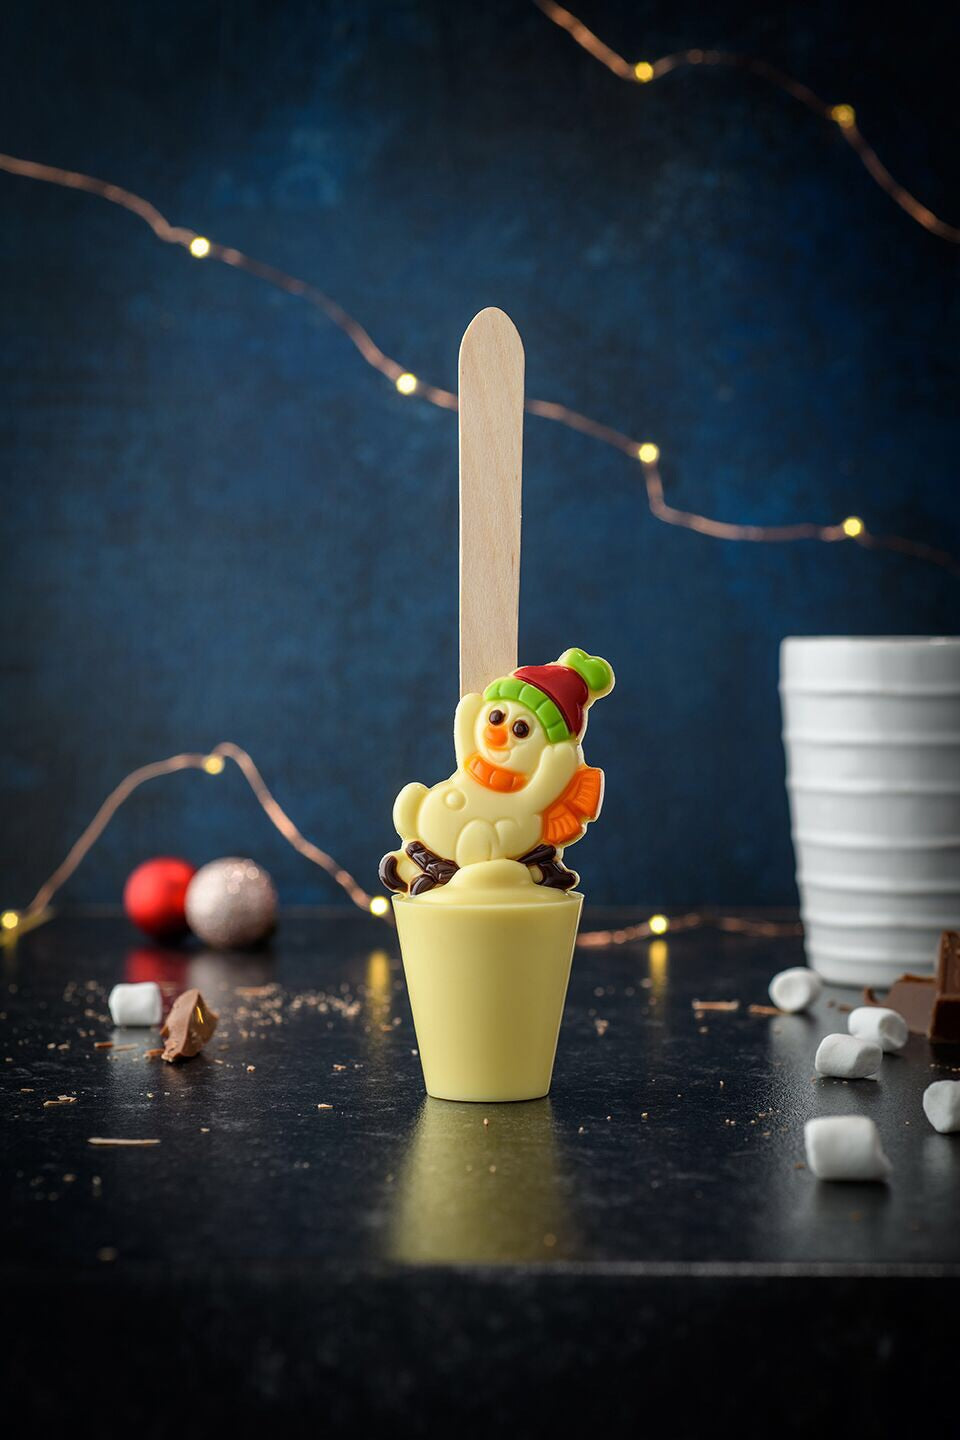 Snowman in Sledge Hot Chocolate Spoon